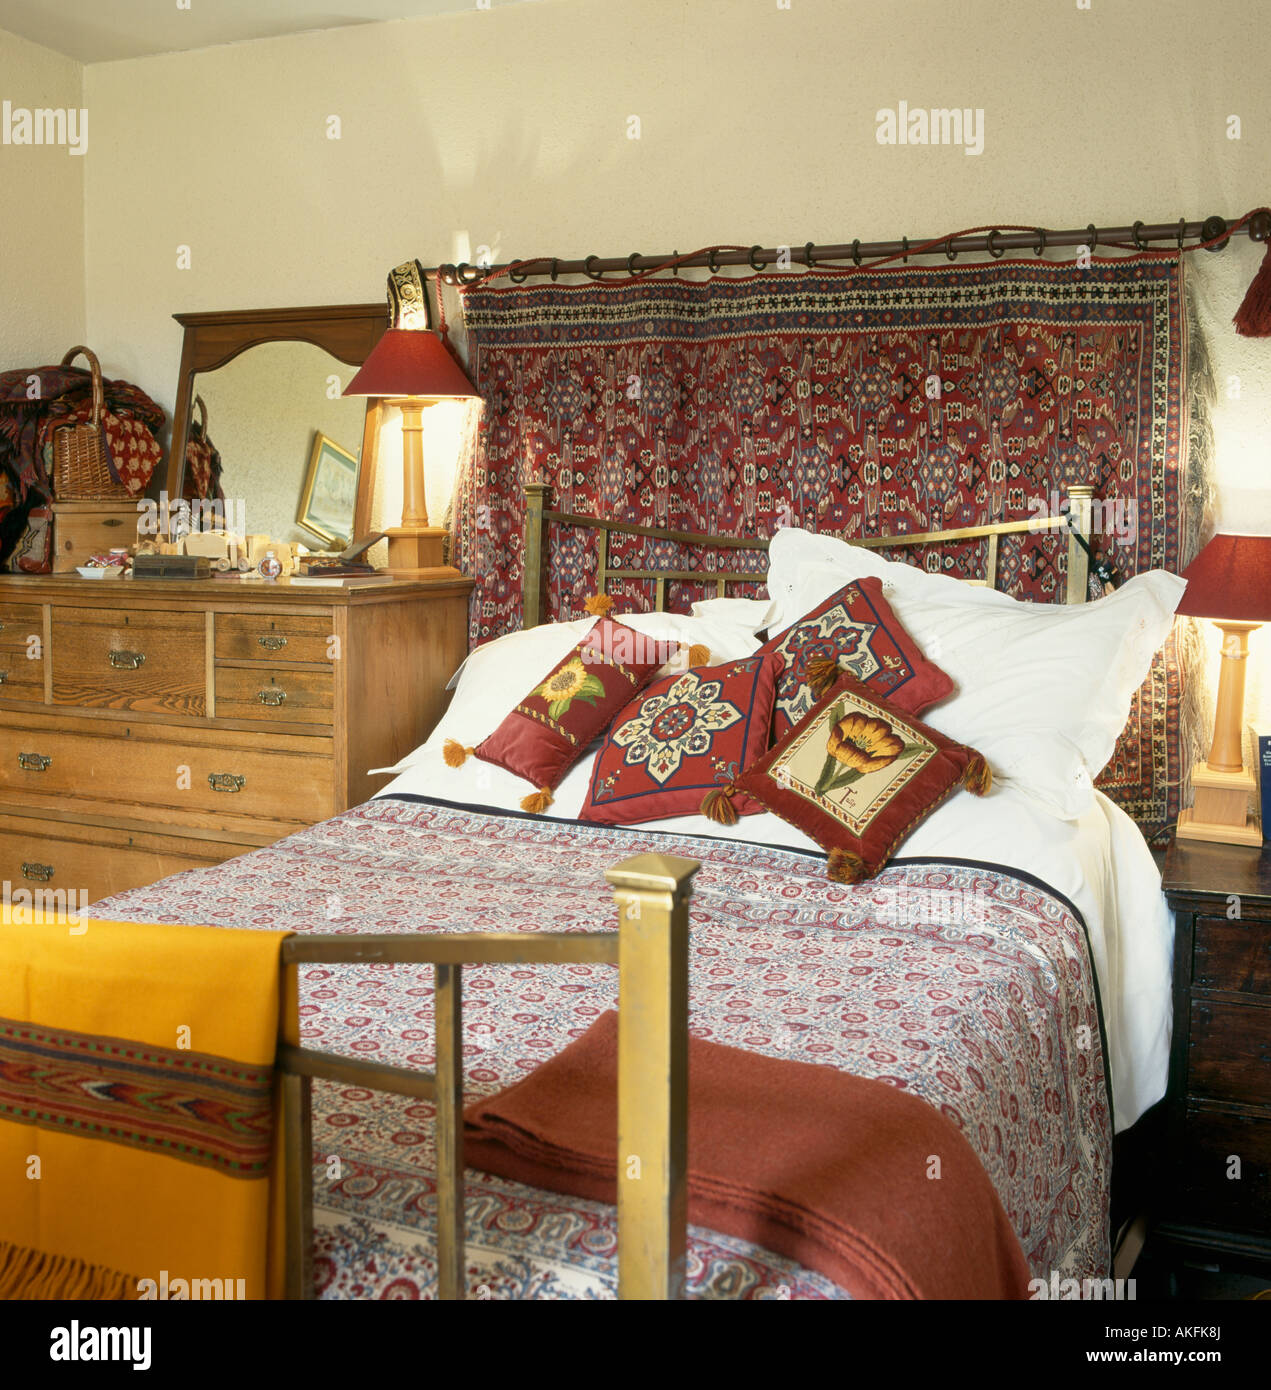 Indian Wall Hanging Above Brass Bed With Patterned Red Cushions And  Bedcover In Small Bedroom